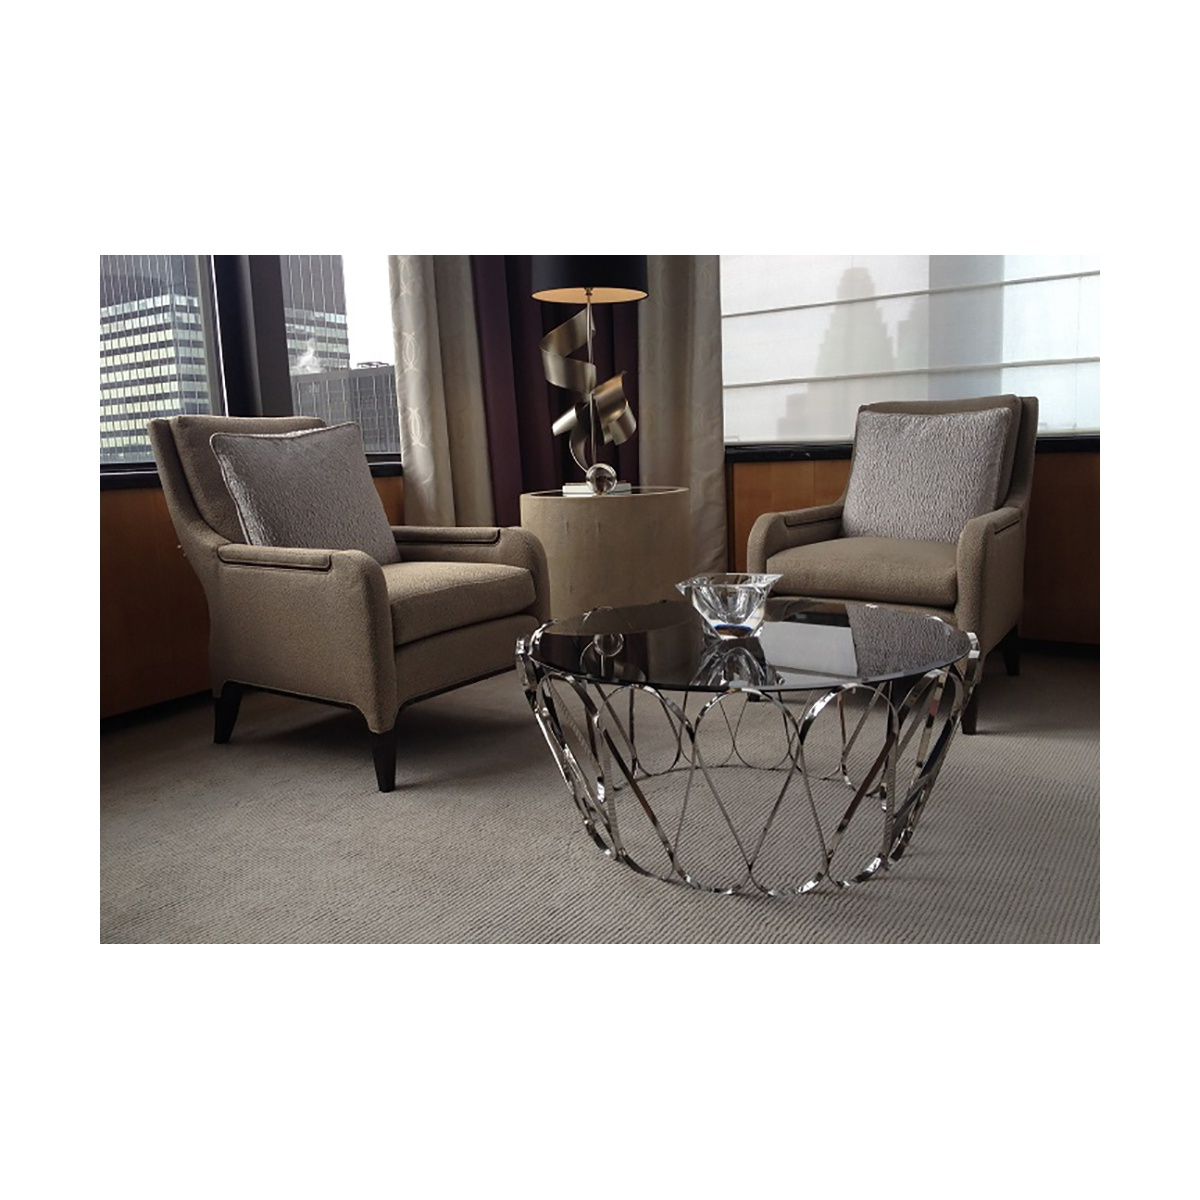 Widely Used Aquarius Glass Coffee Table, Stainless Steel (View 20 of 20)